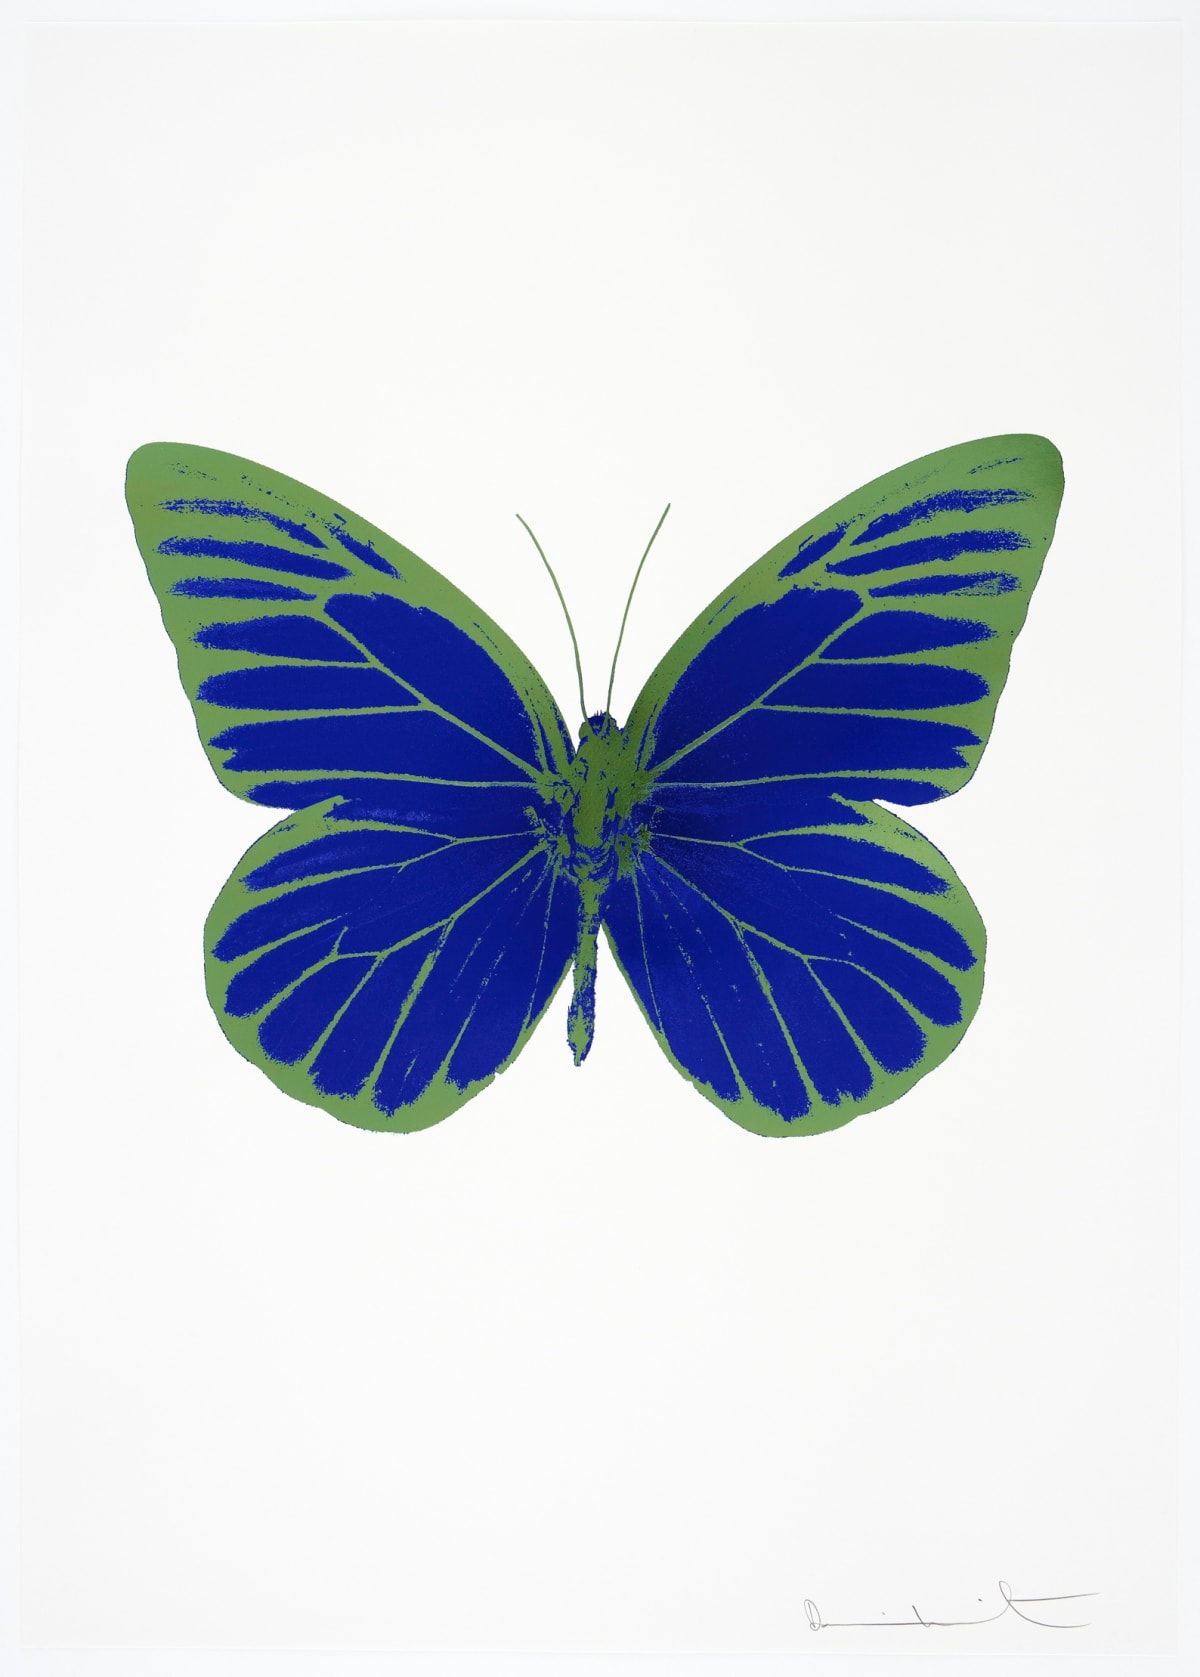 Damien Hirst The Souls I - Westminster Blue/Blind Impression/Leaf Green, 2010 2 colour foil block on 300gsm Arches 88 archival paper. Signed and numbered. Published by Paul Stolper and Other Criteria 72 x 51cm OC7785 / 659-48 Edition of 15